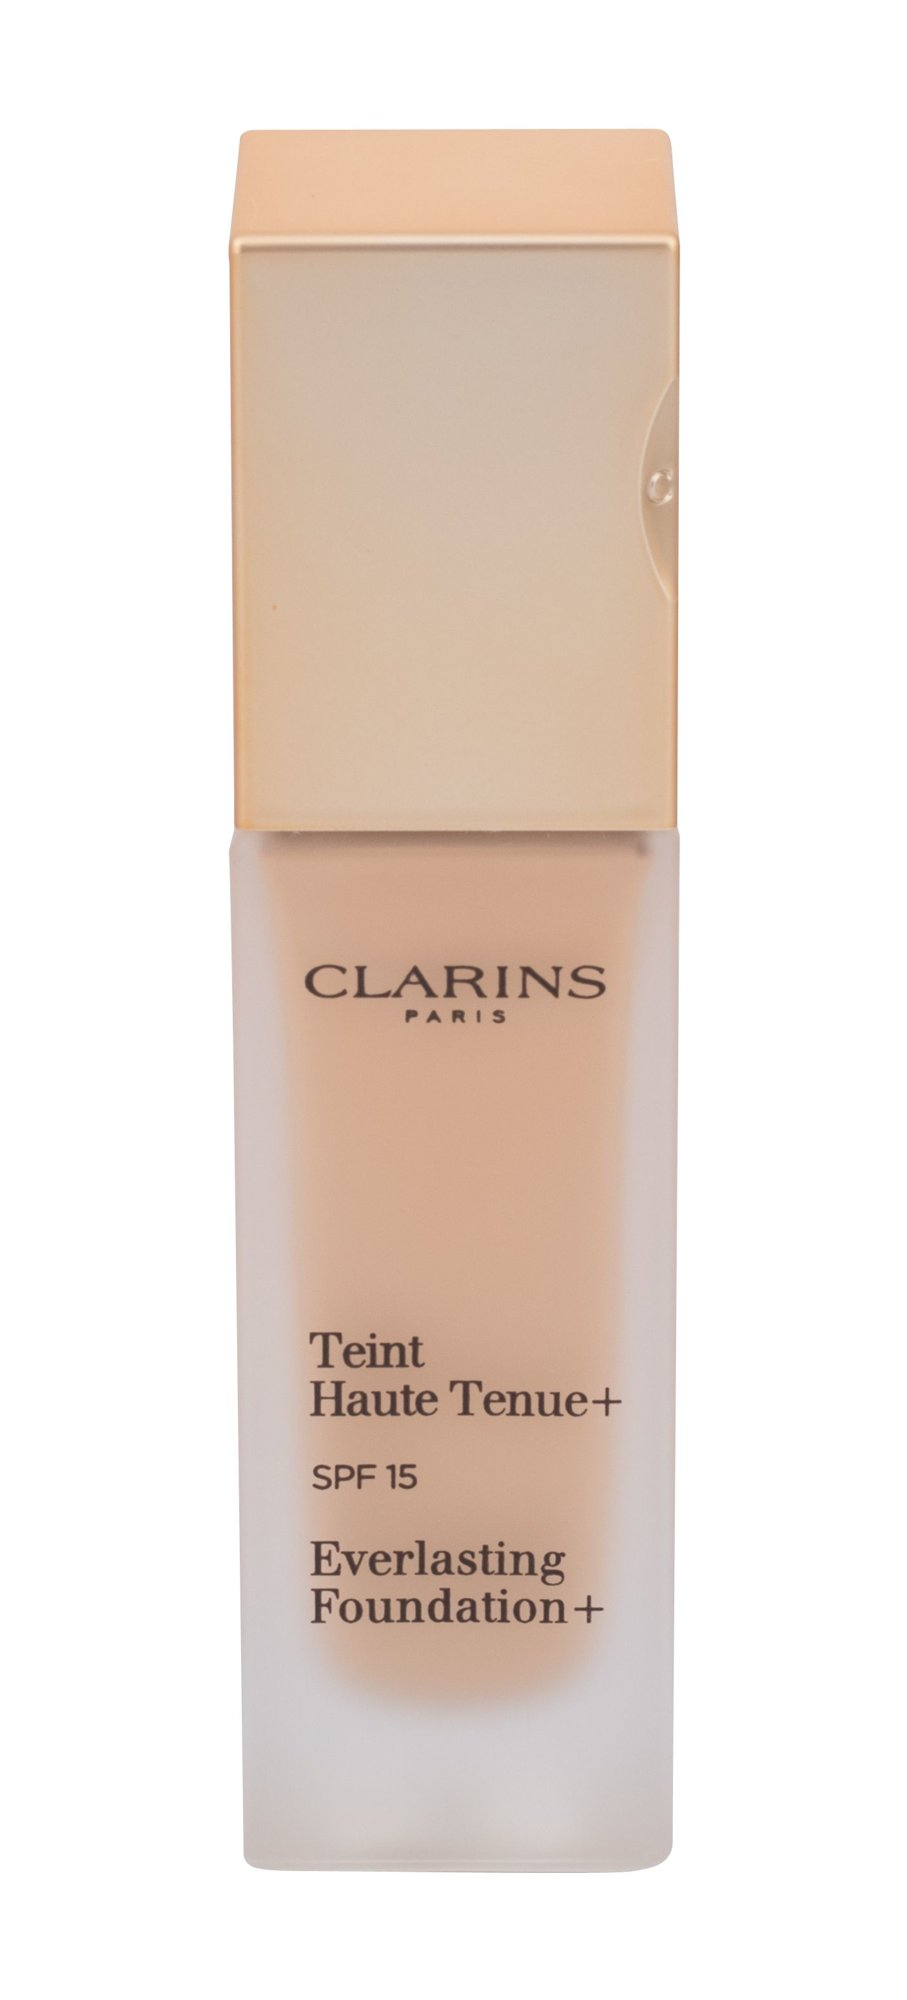 Clarins Everlasting Foundation+ Cosmetic 30ml 108 Sand